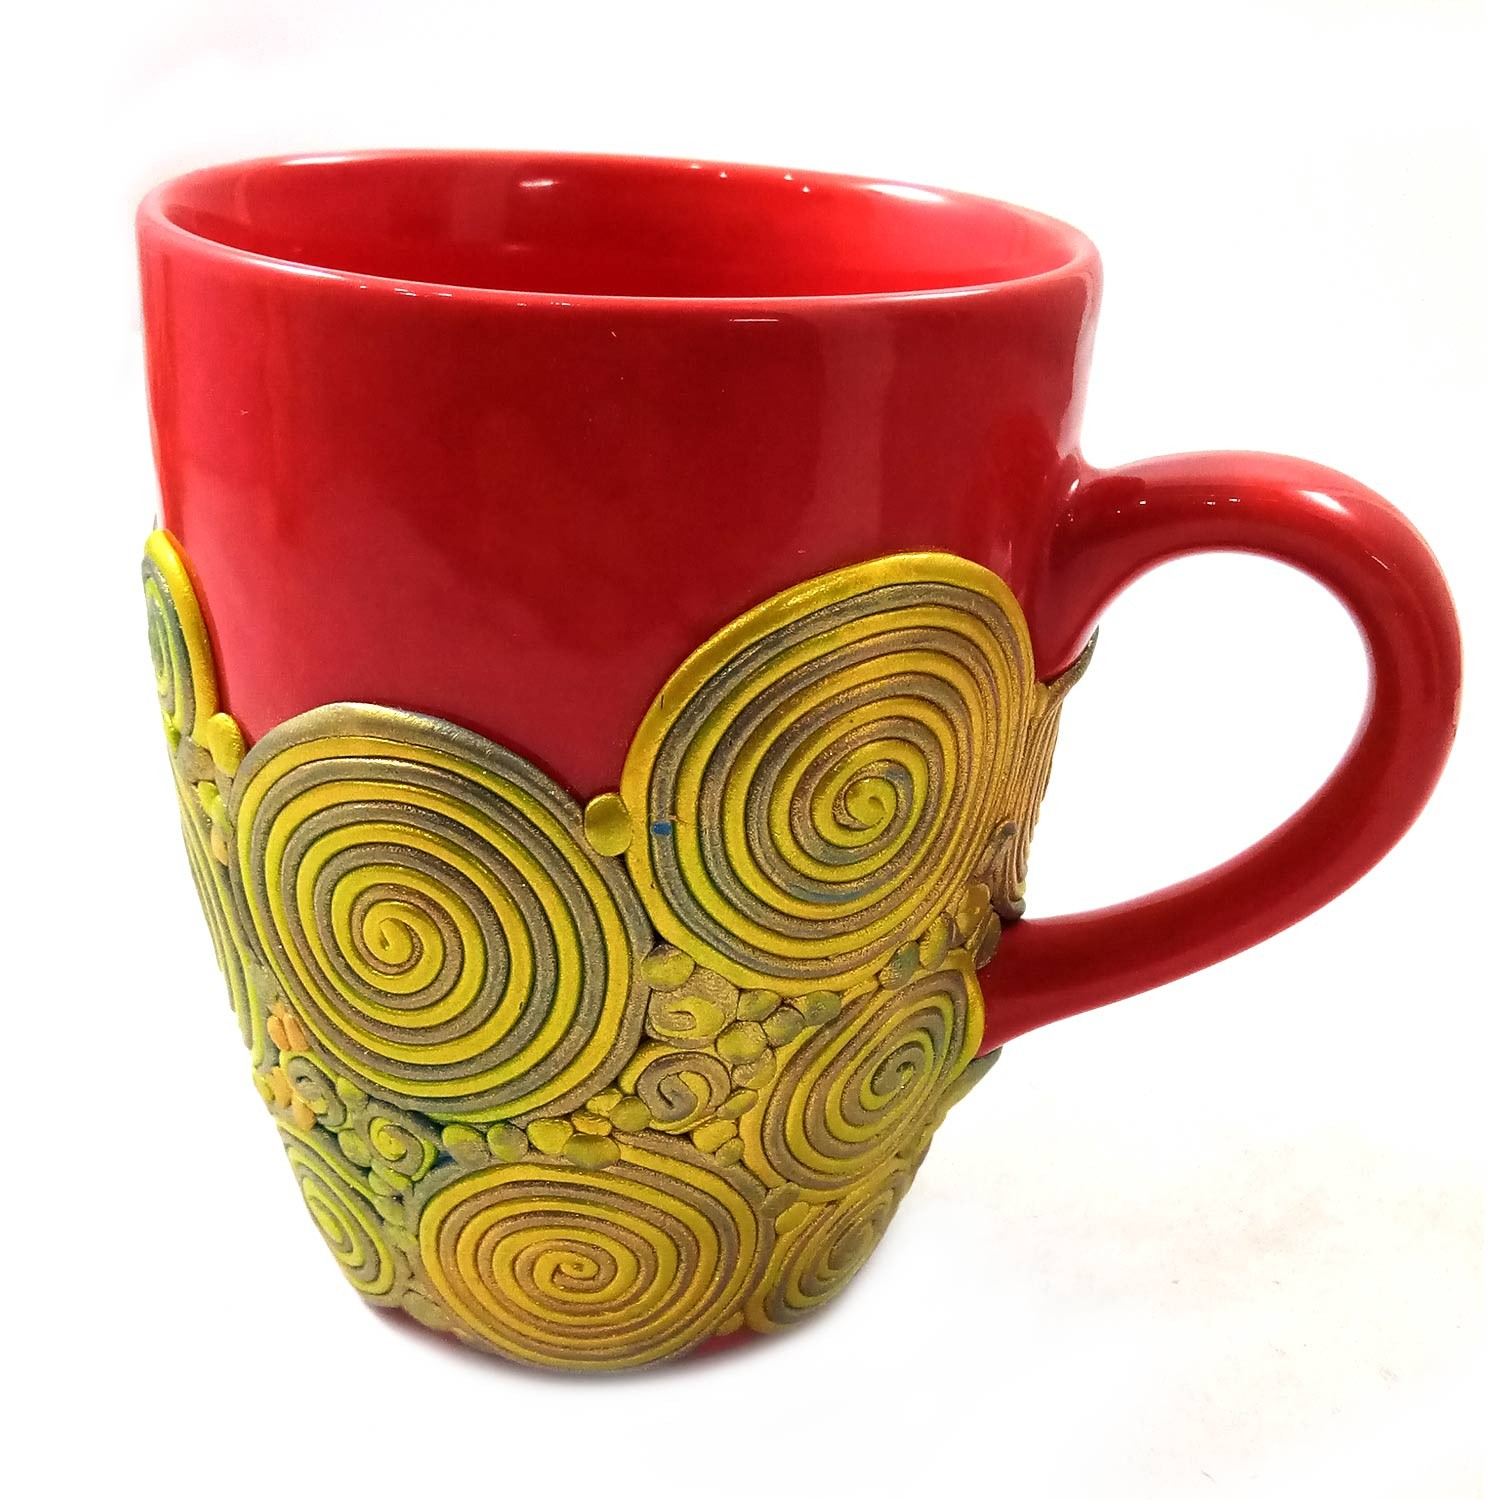 Handmade Red With Yellow Polymer Clay Design Terracotta Type 1 Mug by Women Groups